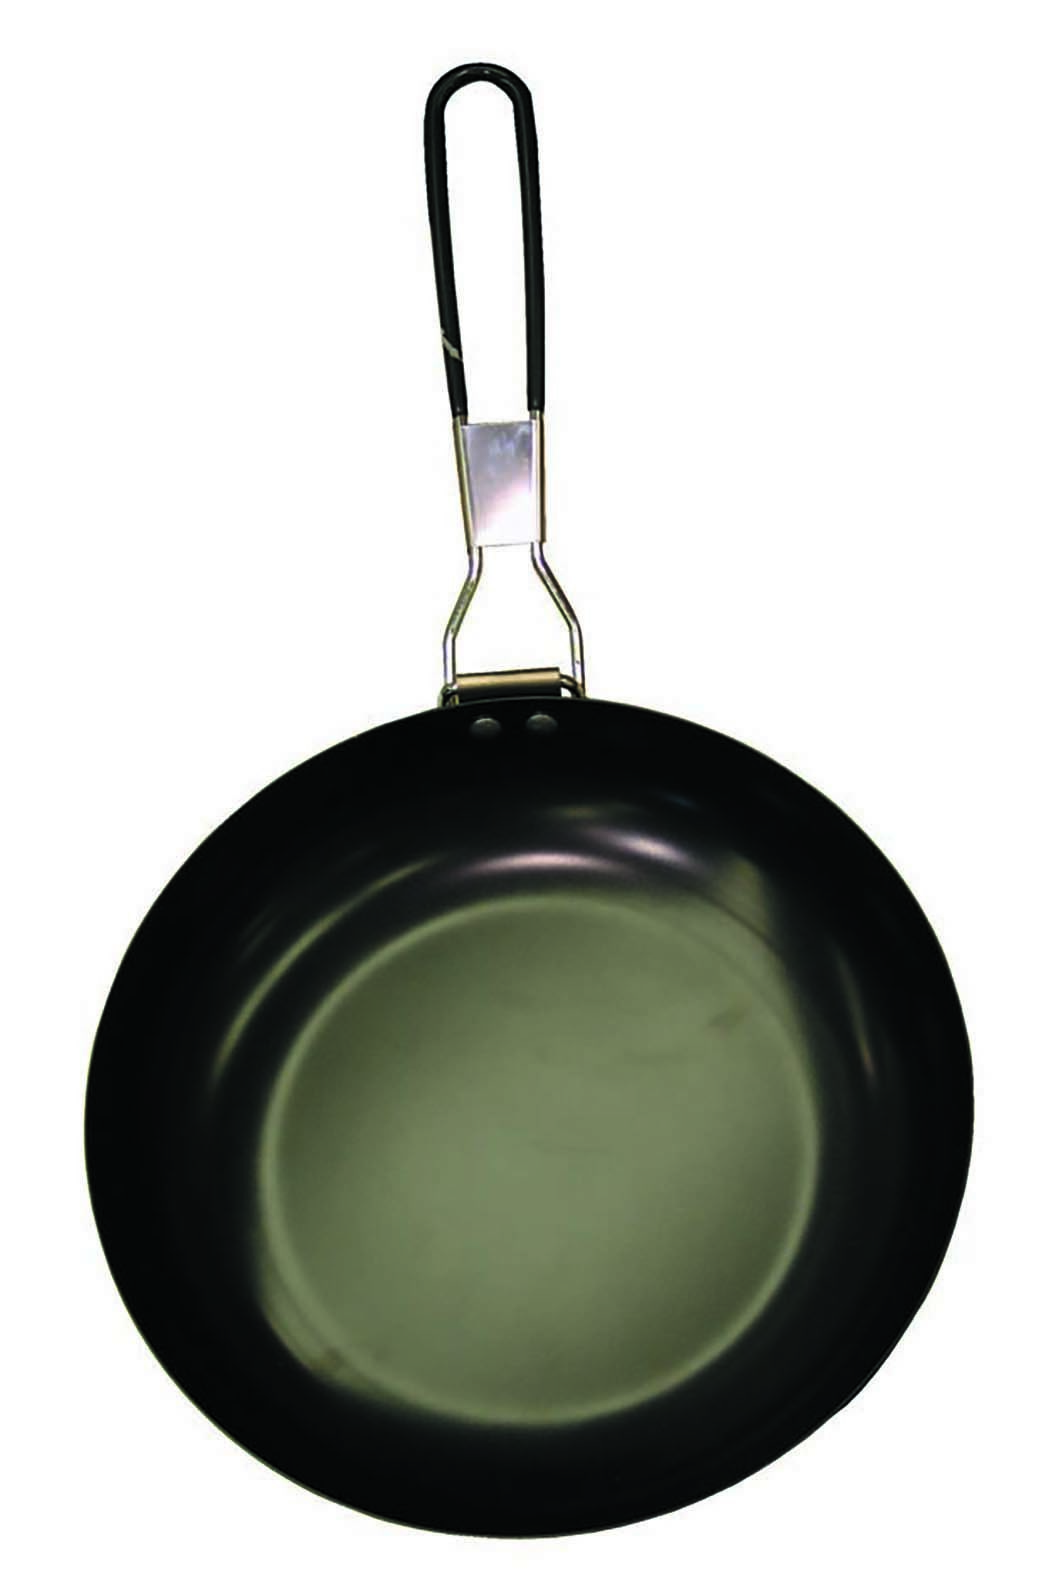 Coleman 22cm Non-Stick Fry pan, None, hi-res